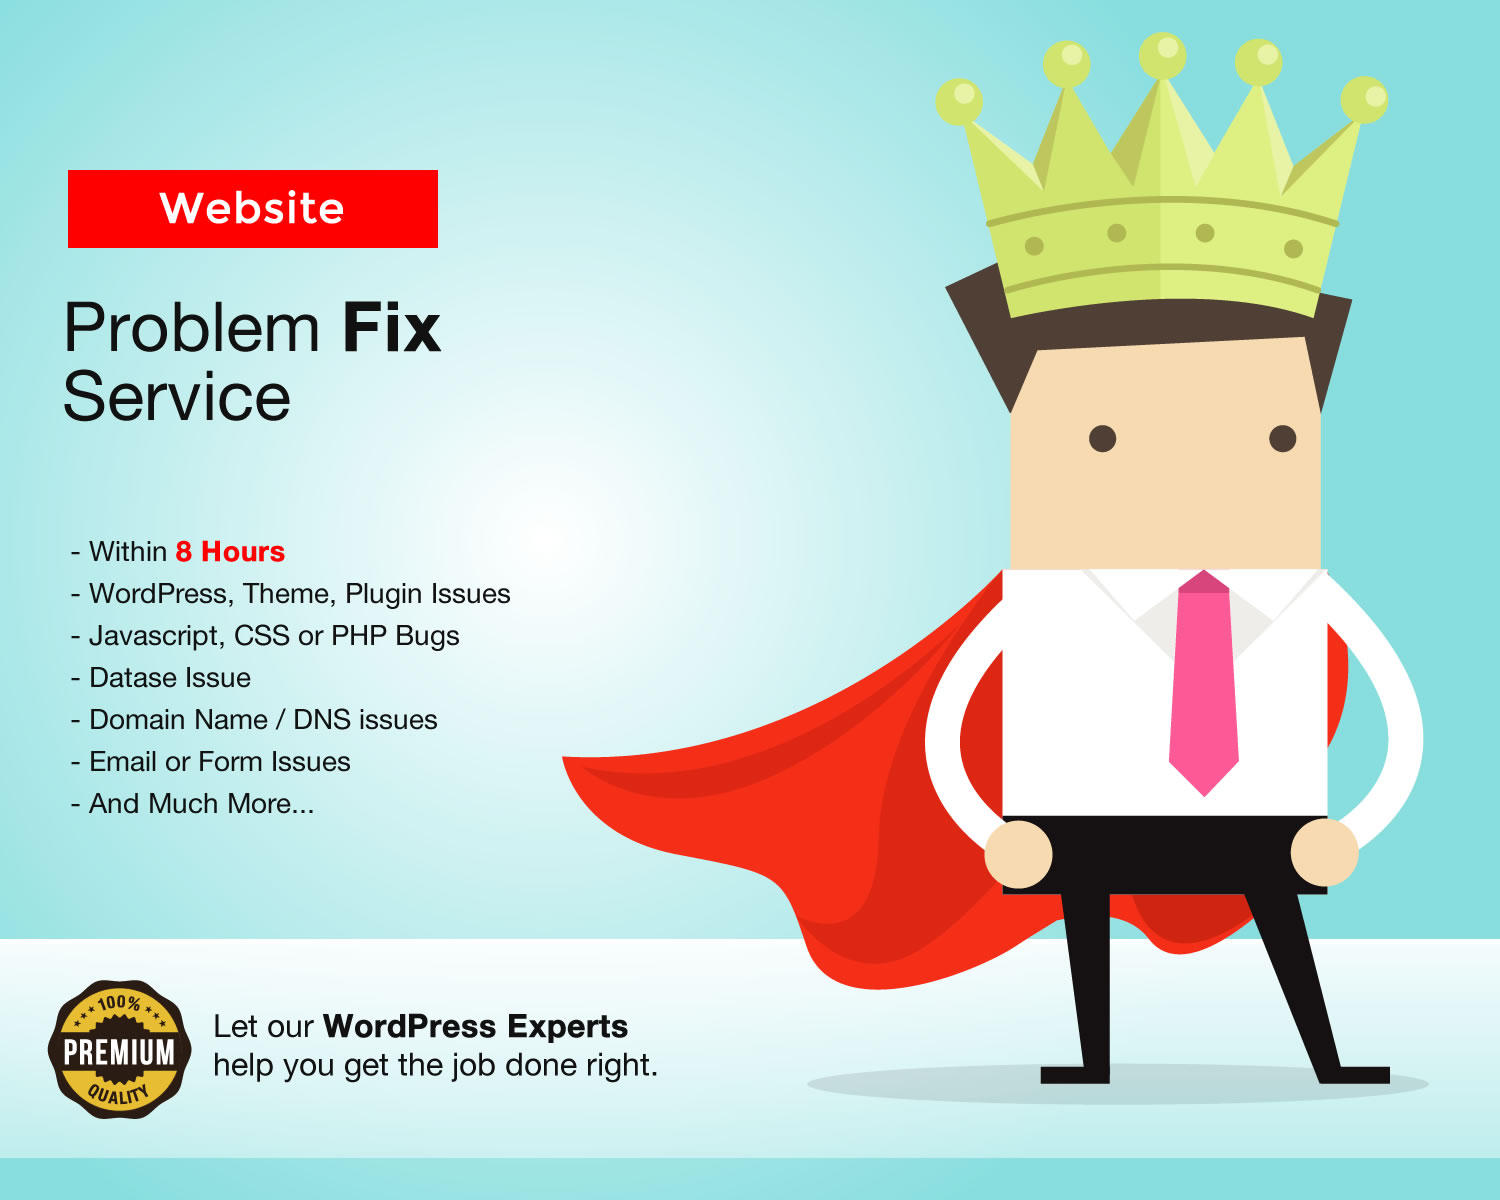 Website or WordPress Problem Fix Service by kentonwebdesign - 105135